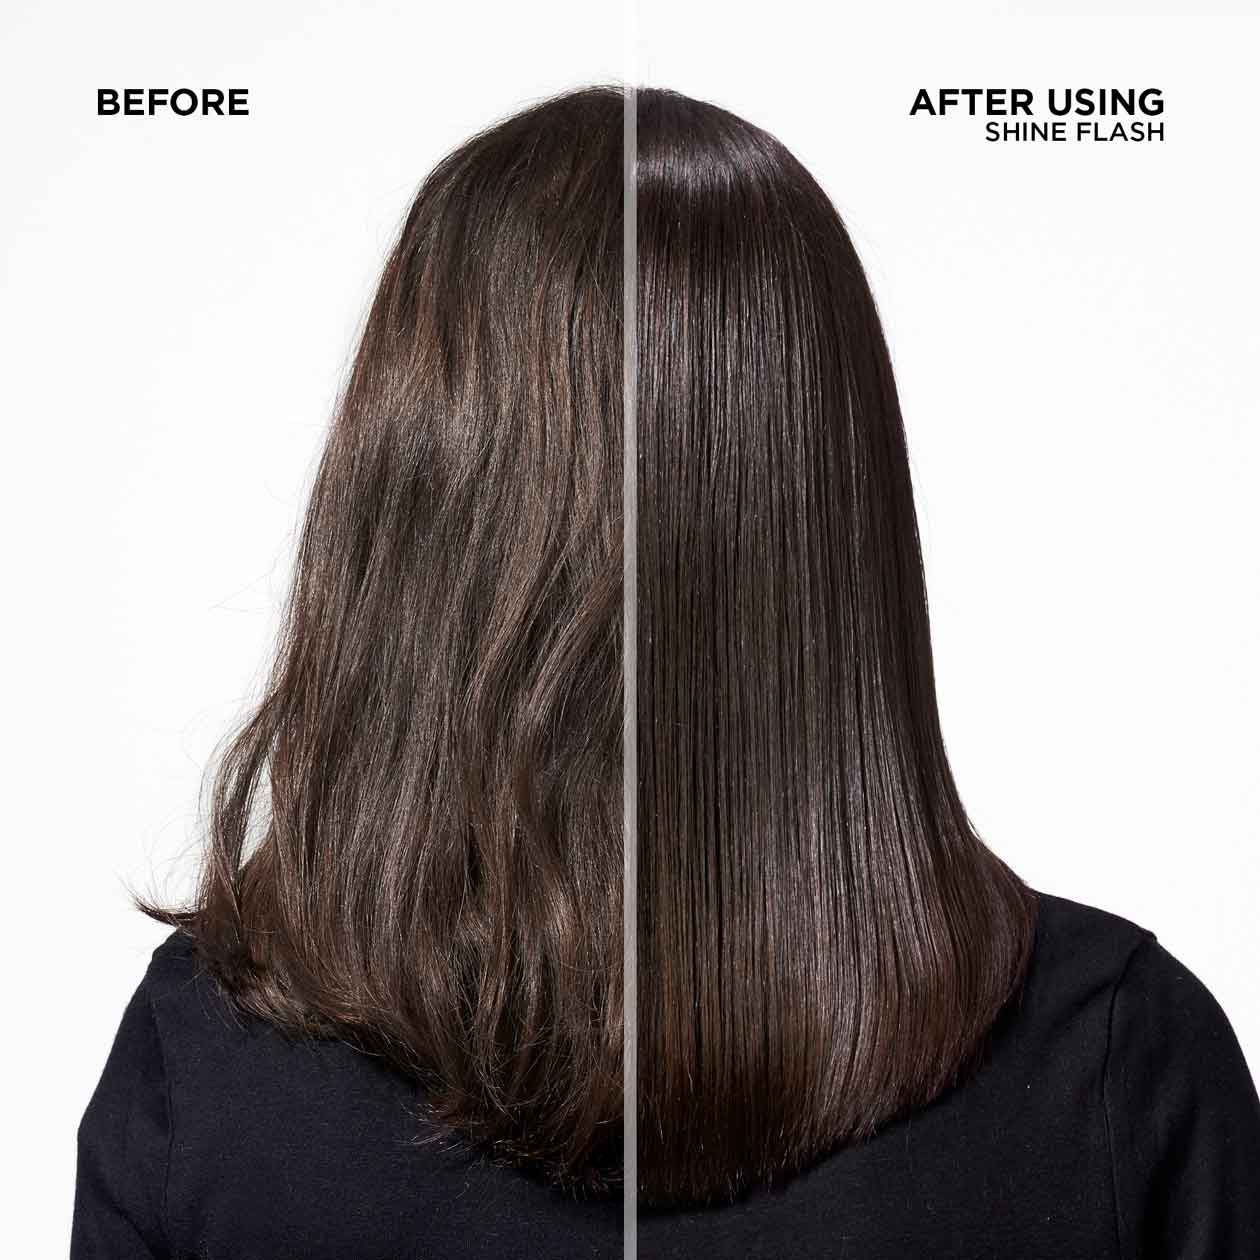 Redken-2020-EComm-Shine-Flash-Before-After-Opt1-2000x2000